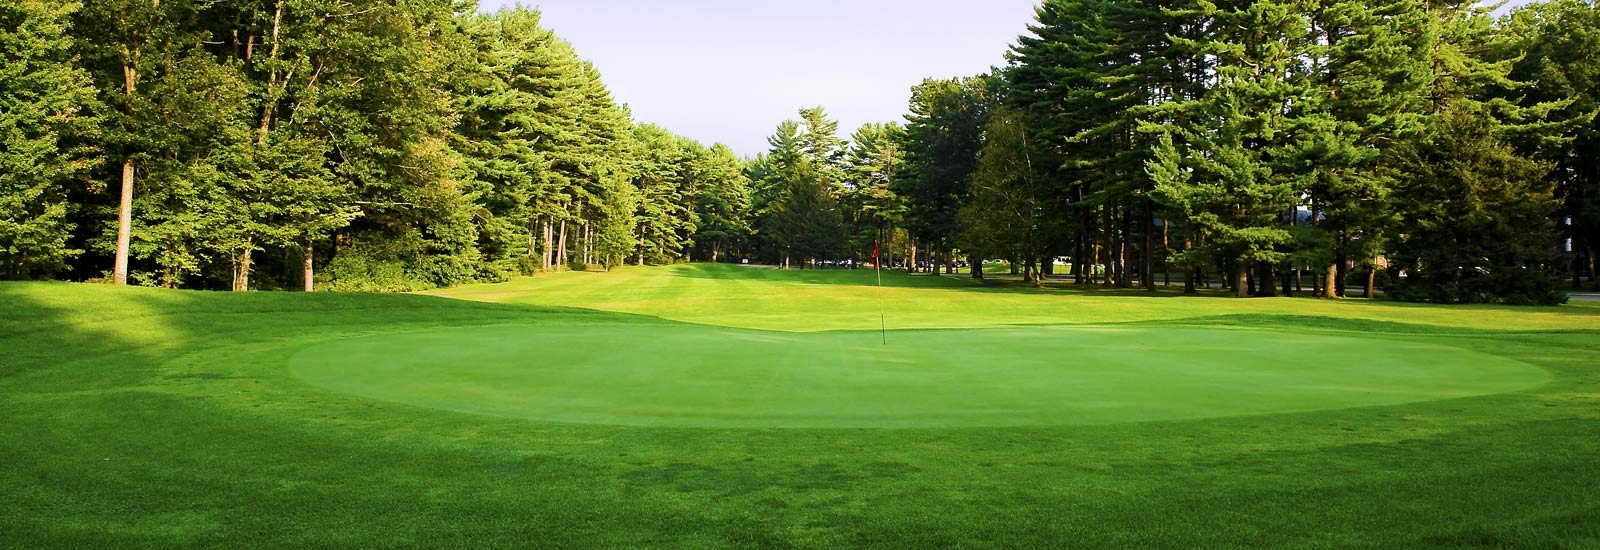 Spa Golf Course